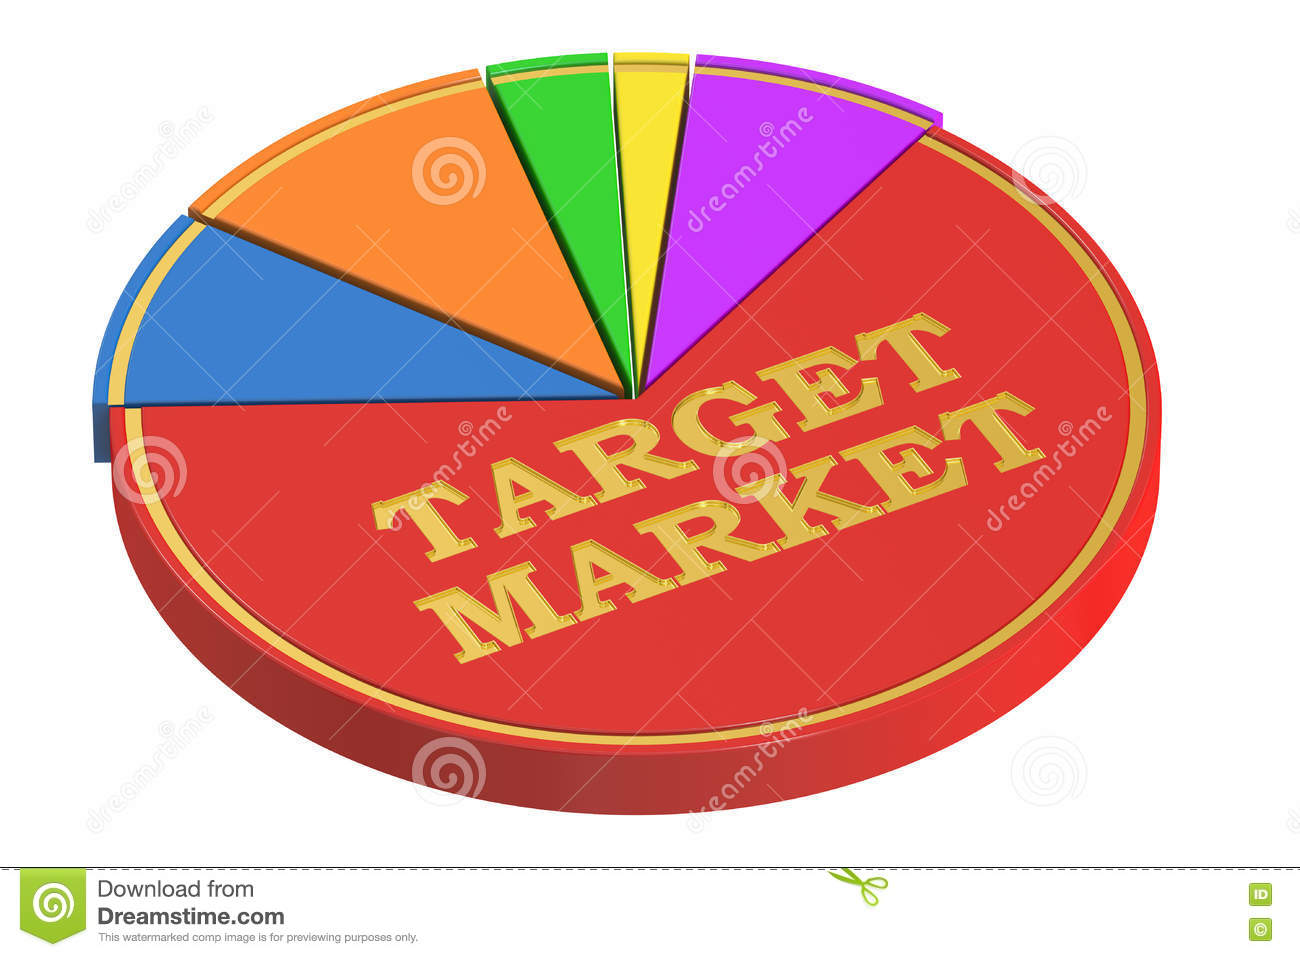 Market leader concept with pie chart stock illustration target market concept with pie chart 3d rendering stock photography nvjuhfo Gallery